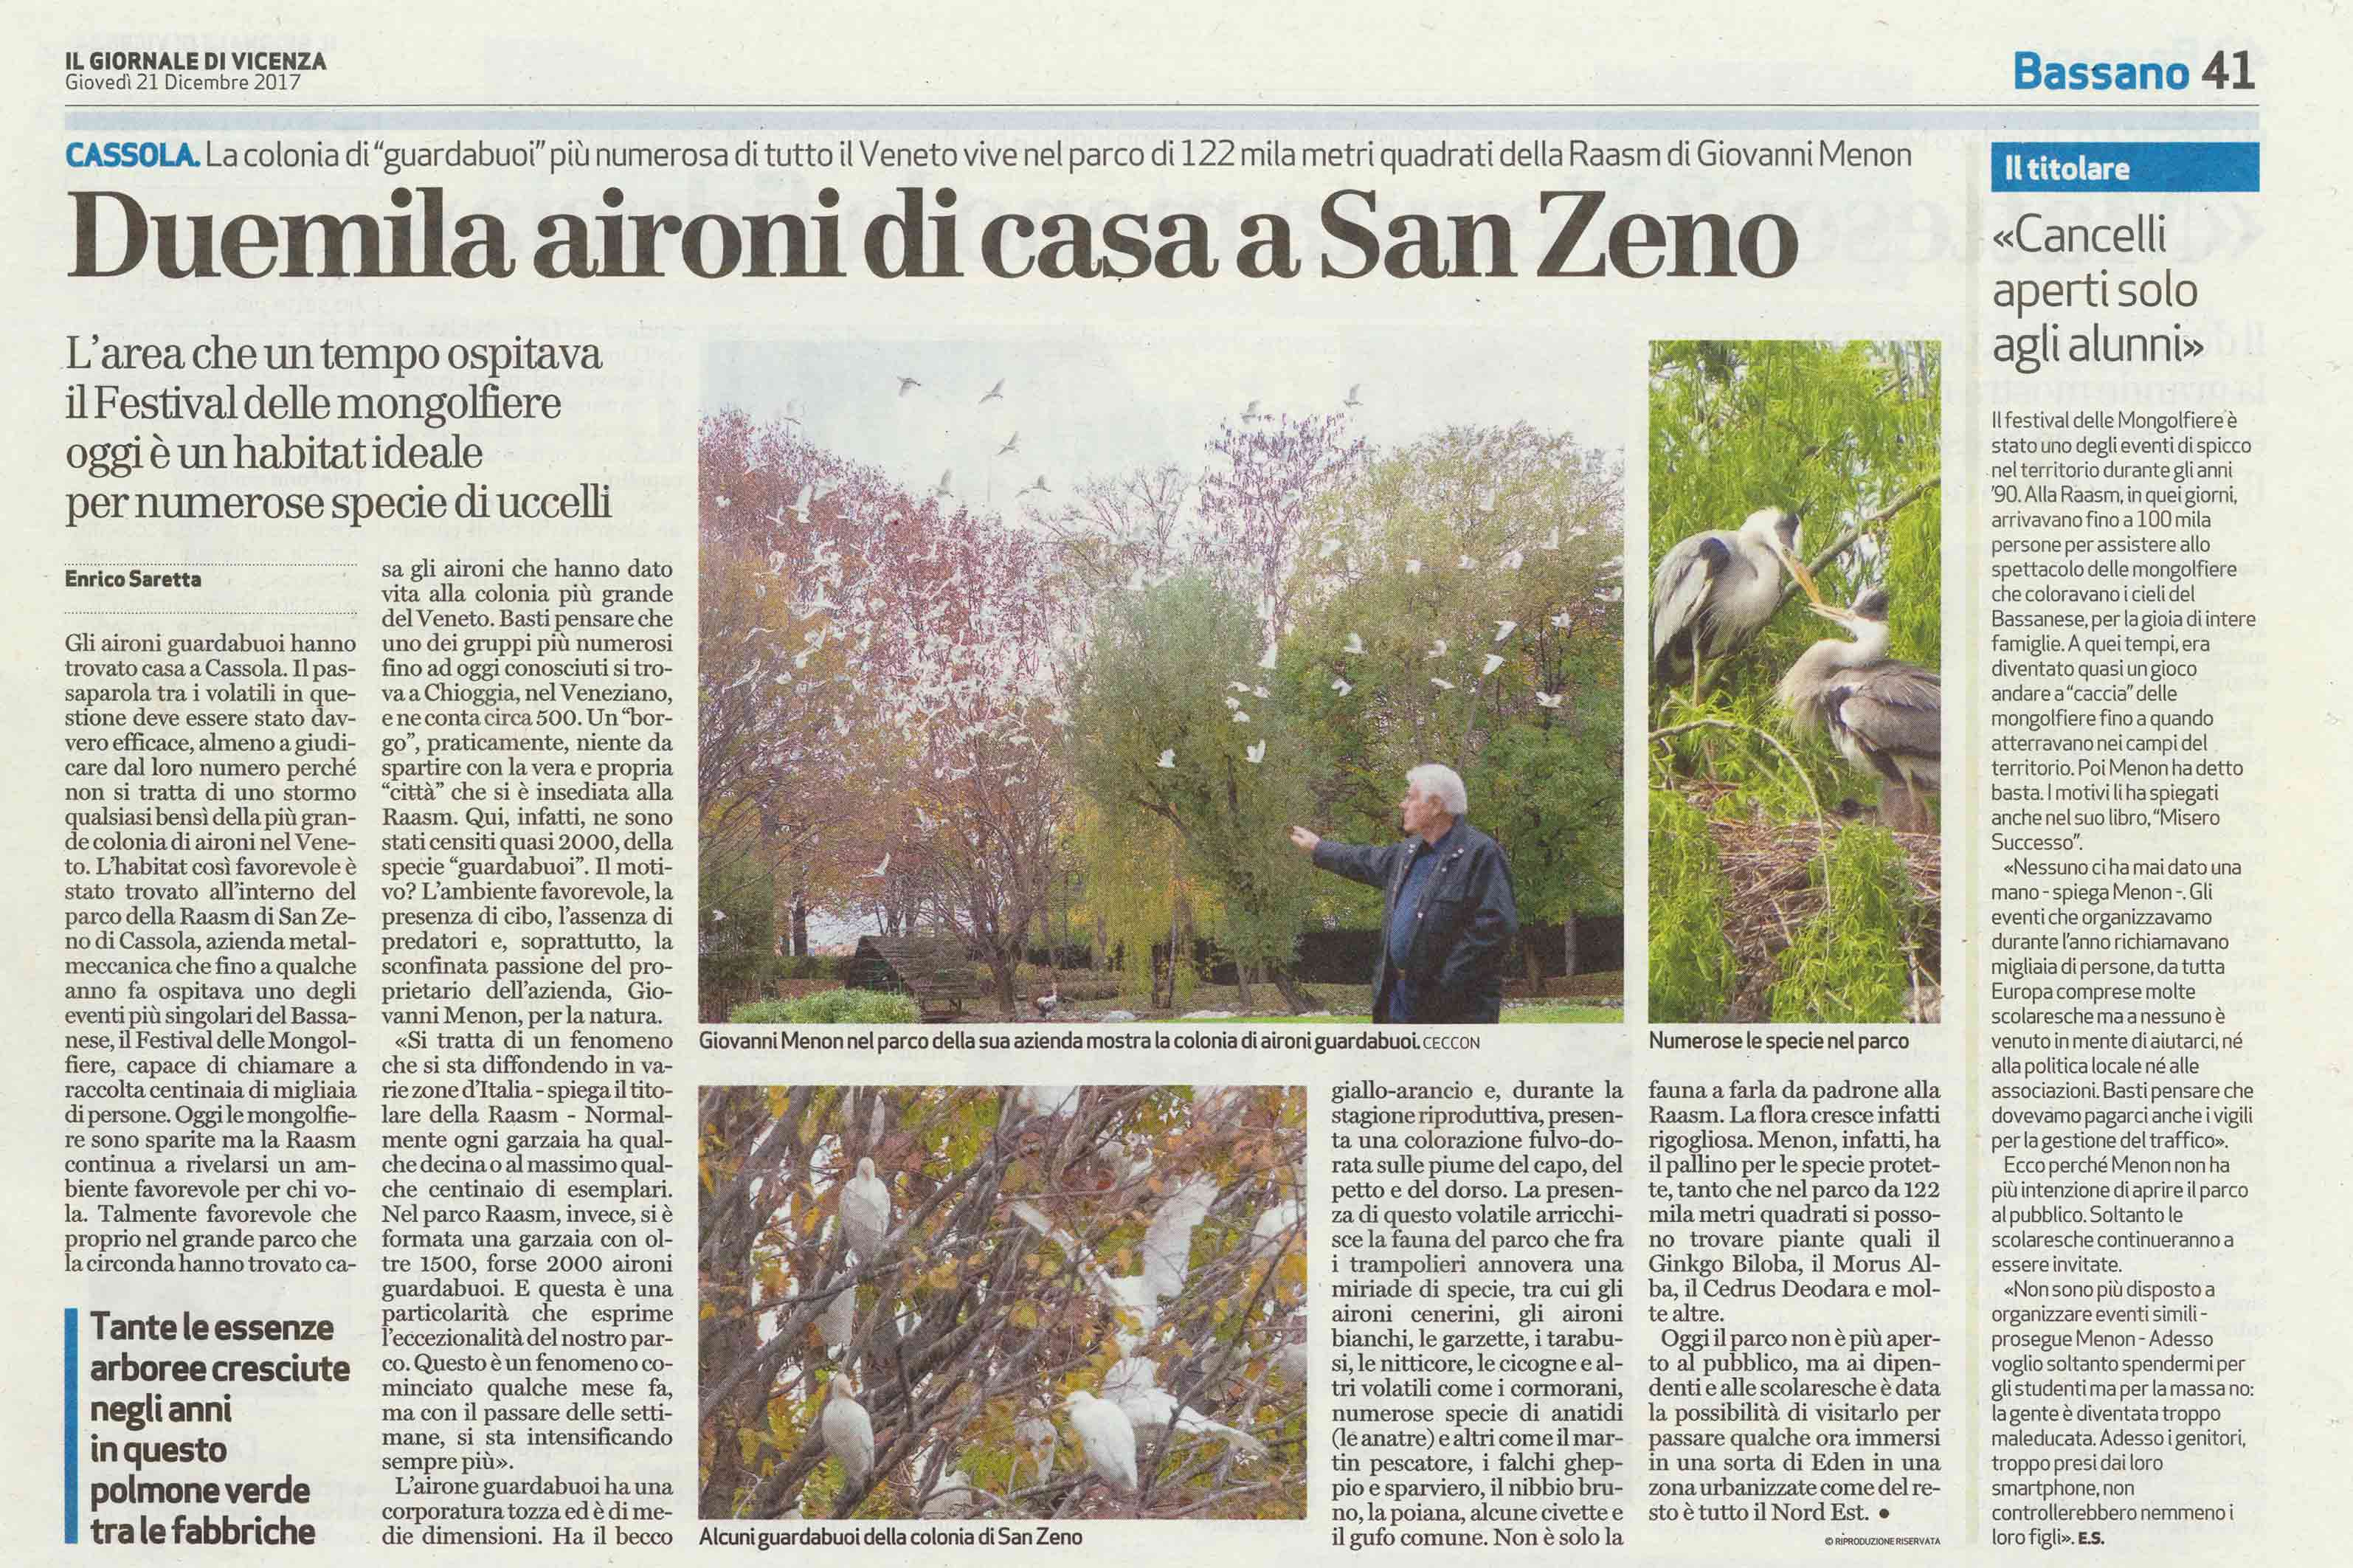 RAASM IS ON THE GIORNALE DI VICENZA